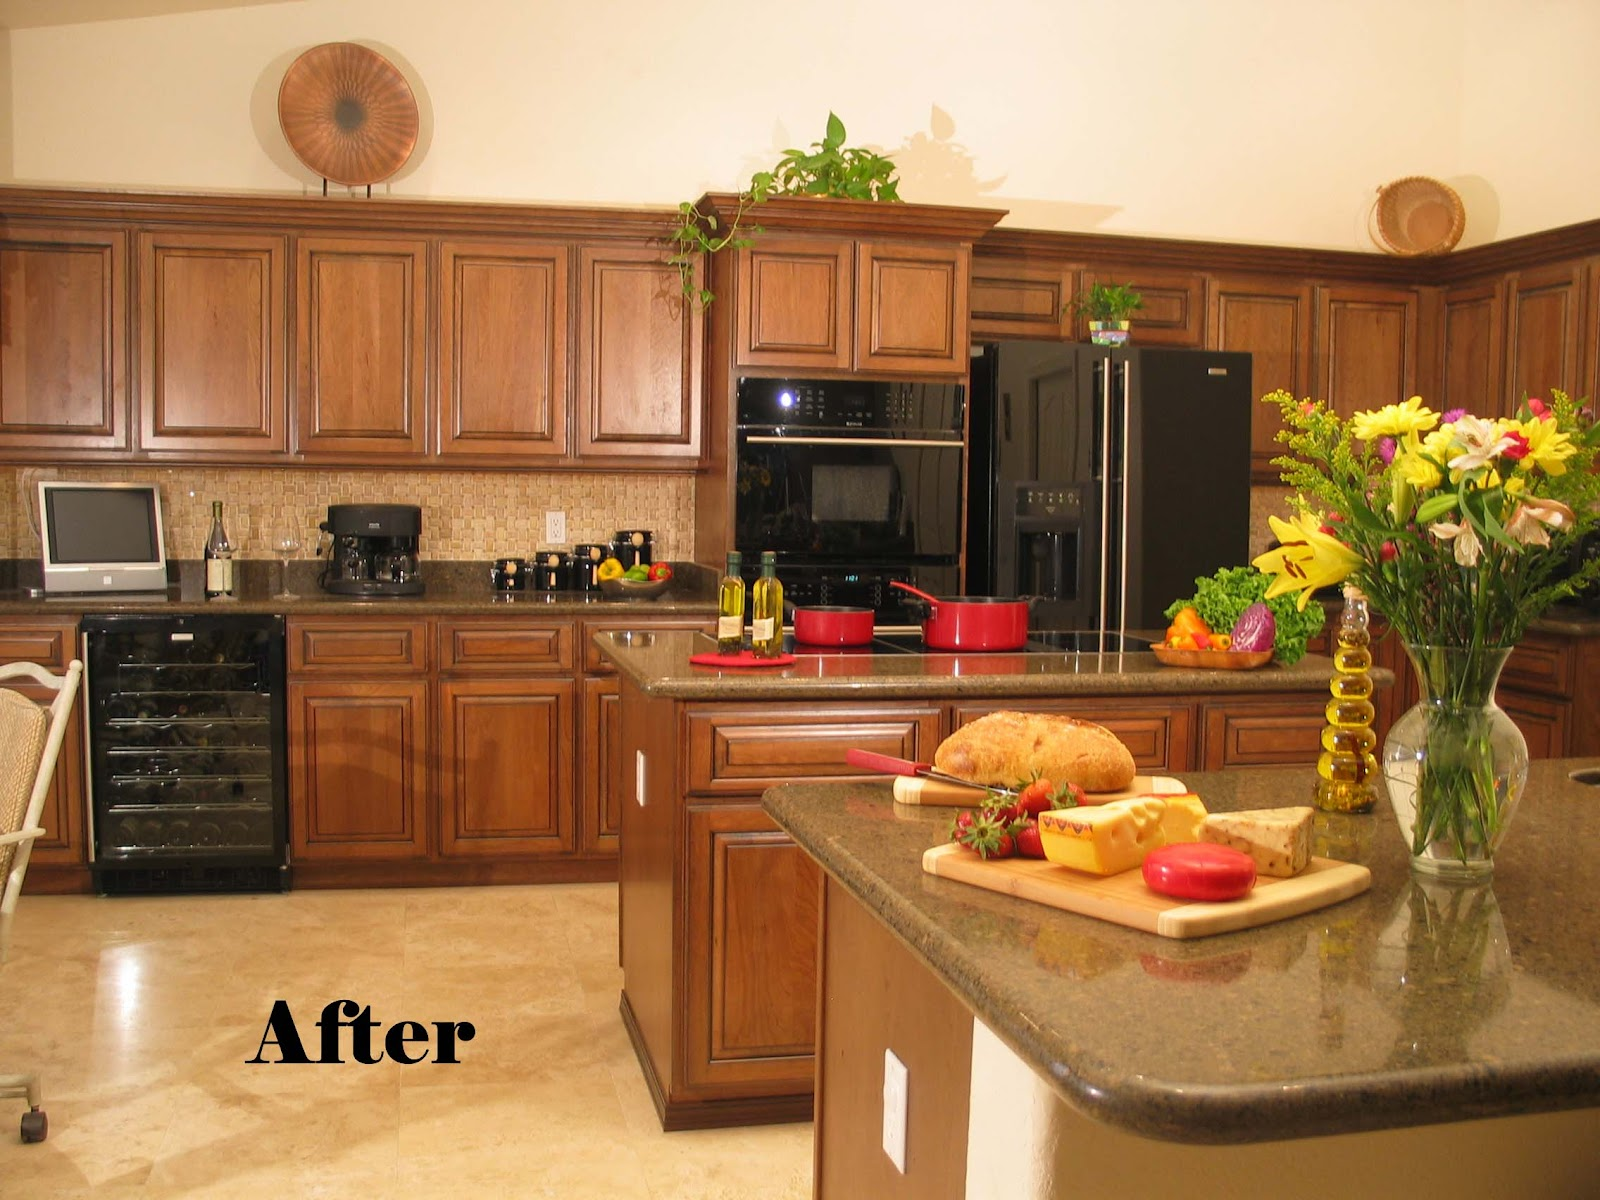 kitchen cabinet refacing | Rawdoors.net Blog: What is Kitchen Cabinet Refacing or ...